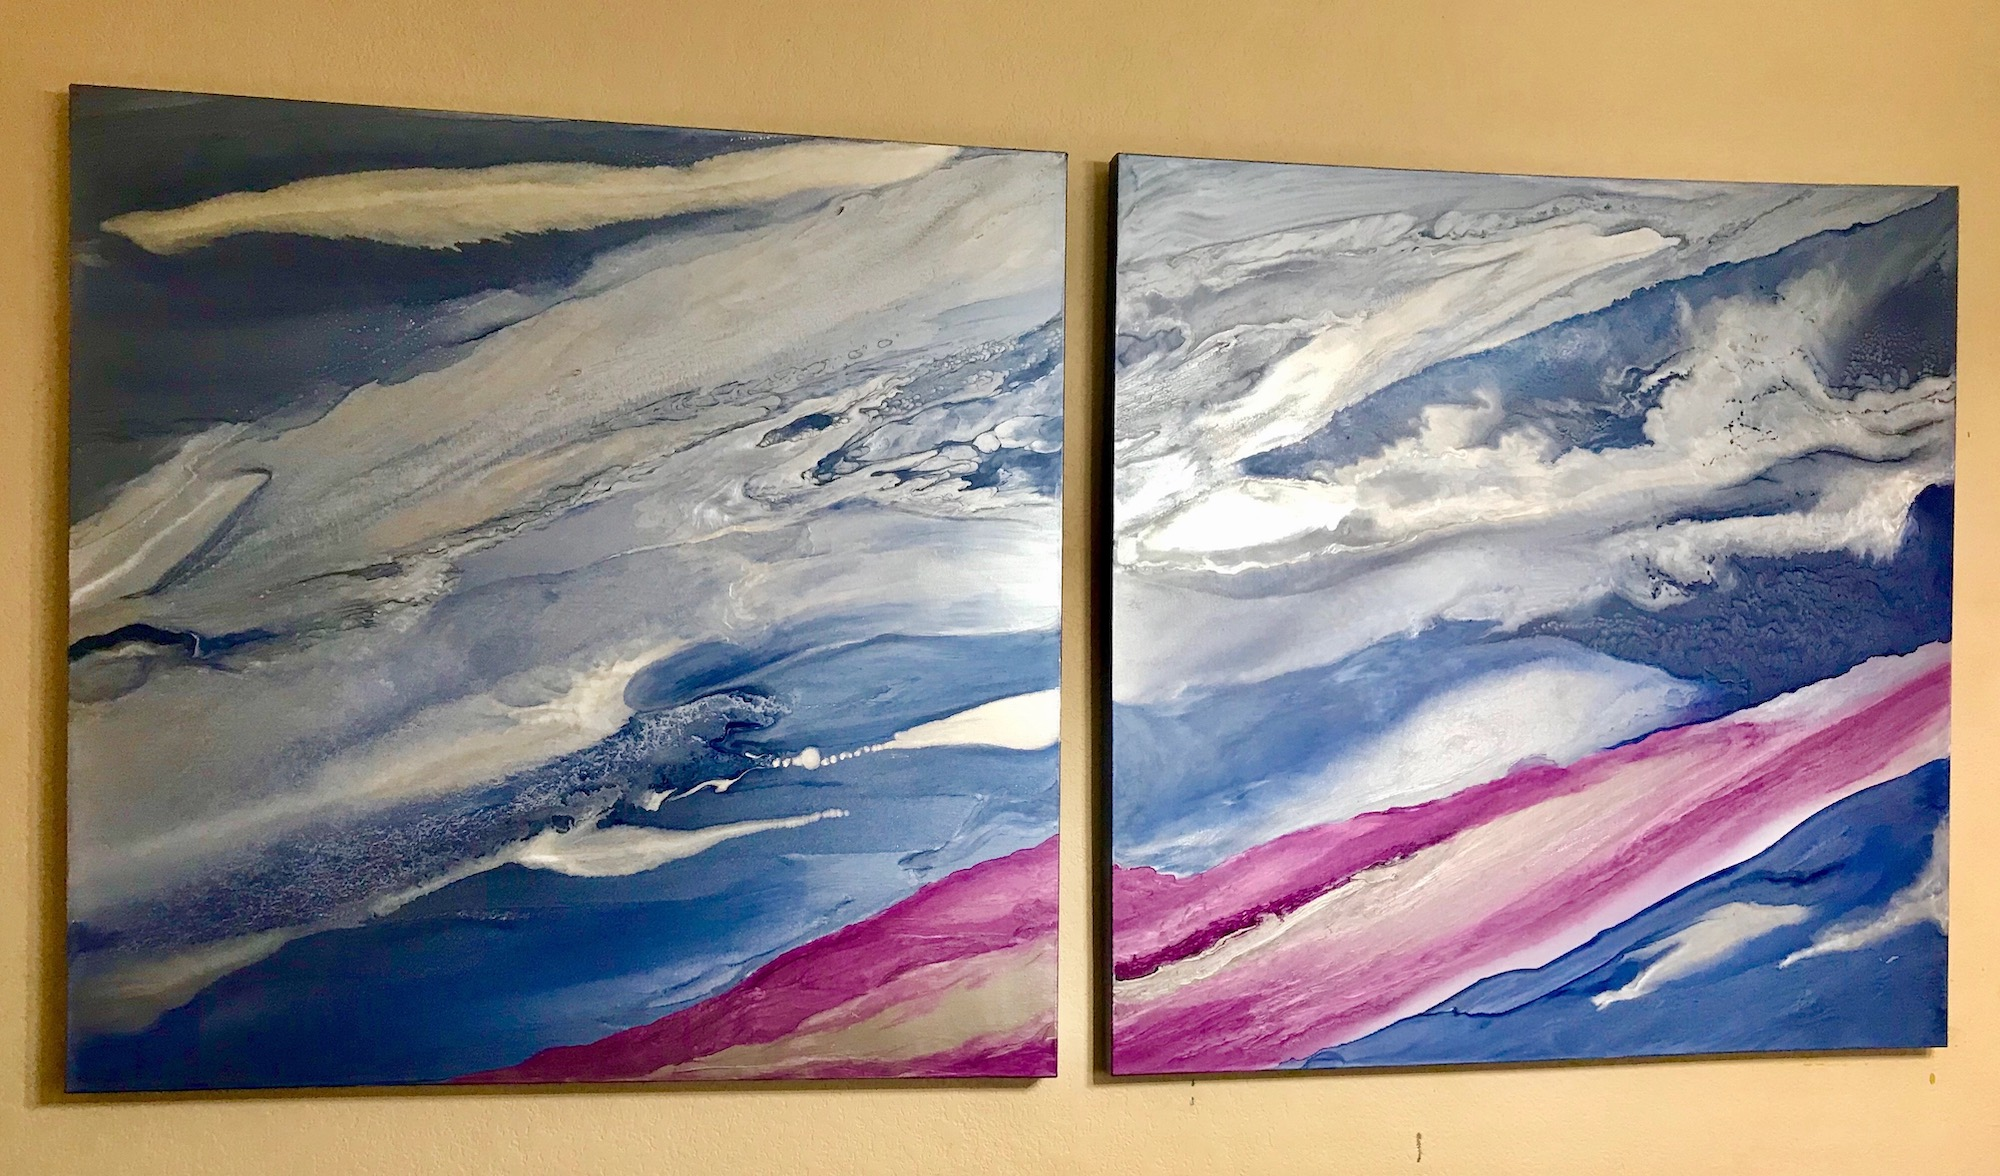 Magenta Skies by Gabrielle Shannon | ArtworkNetwork.com